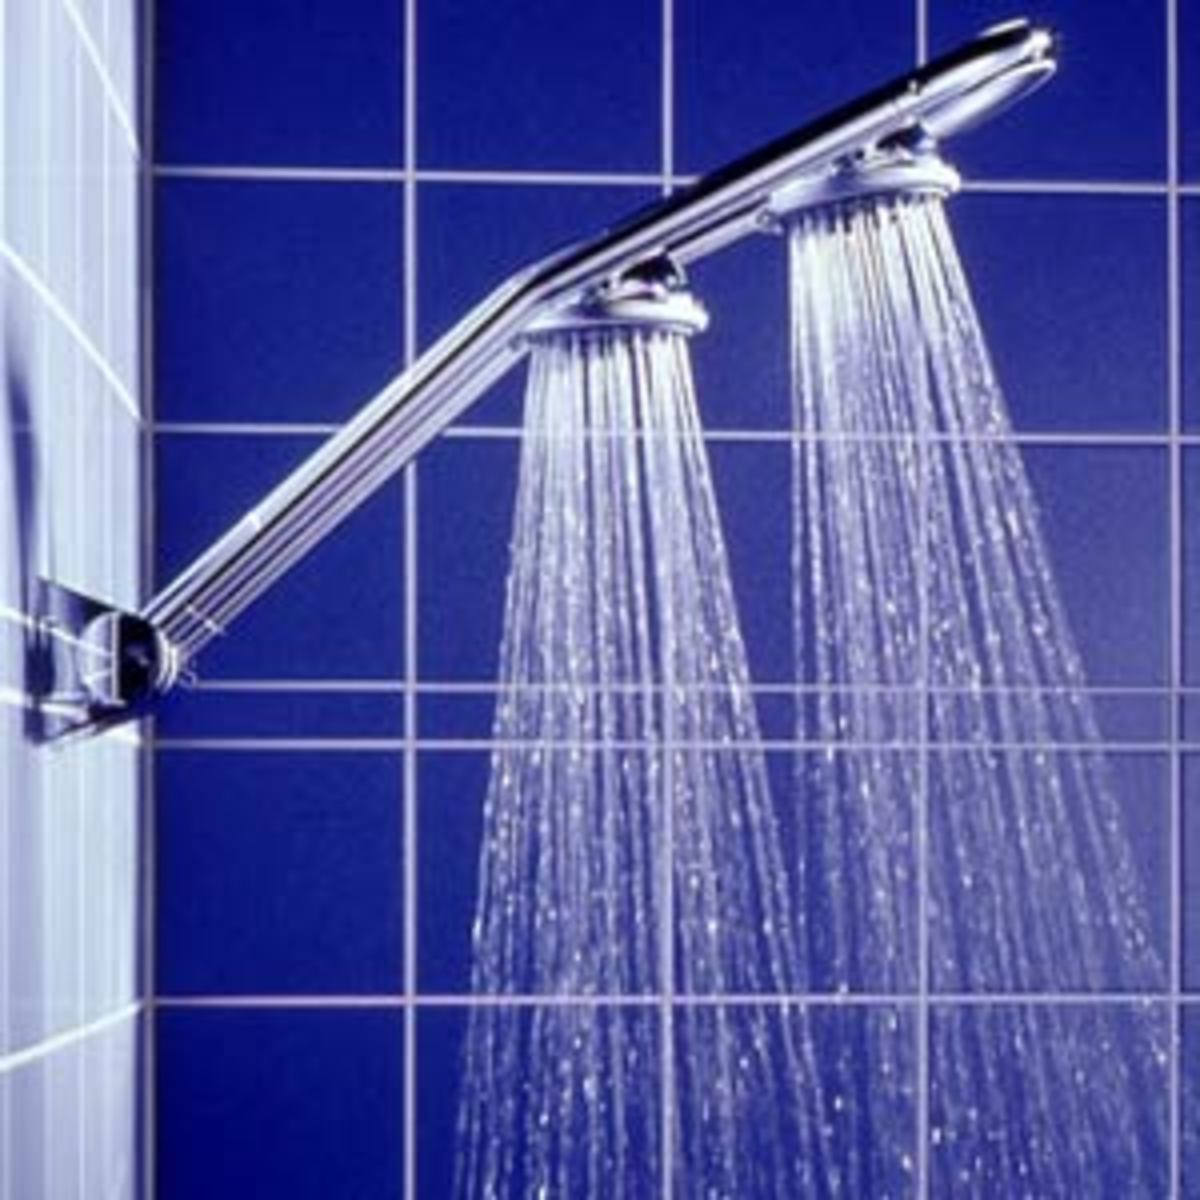 Grohe's Freehander double-head shower system